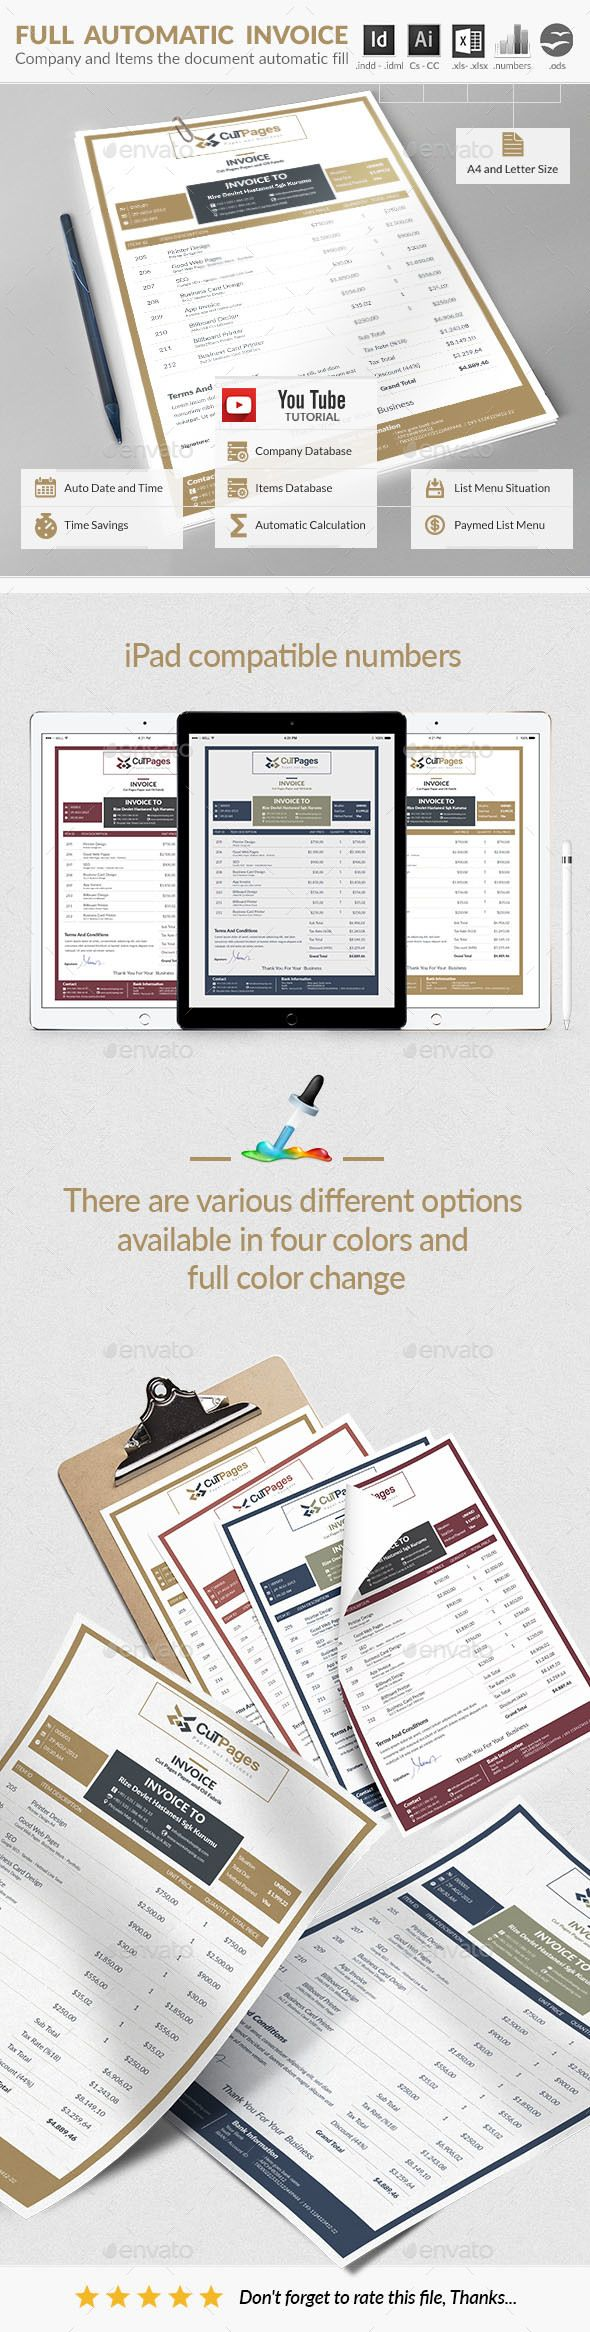 Online Invoice Creator Invoice  Pinterest  Template And Ai Illustrator